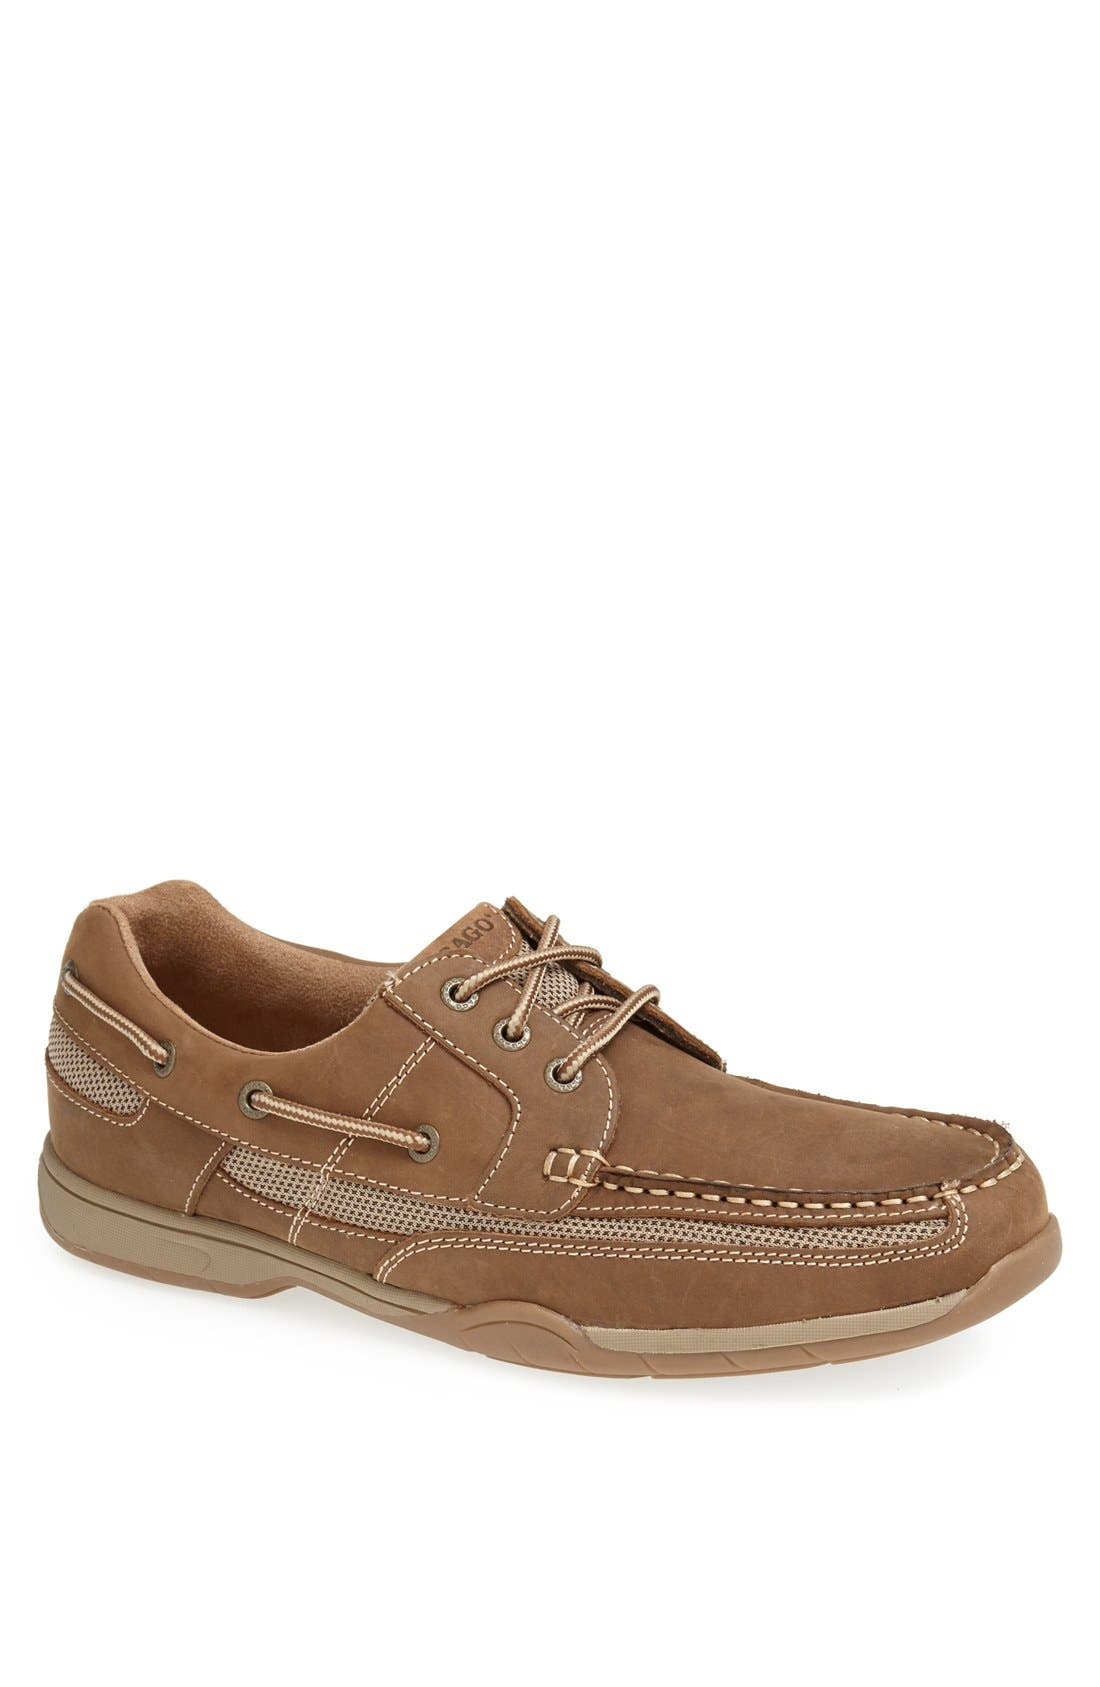 Alternate Image 1 Selected - Sebago 'Carrick' Boat Shoe